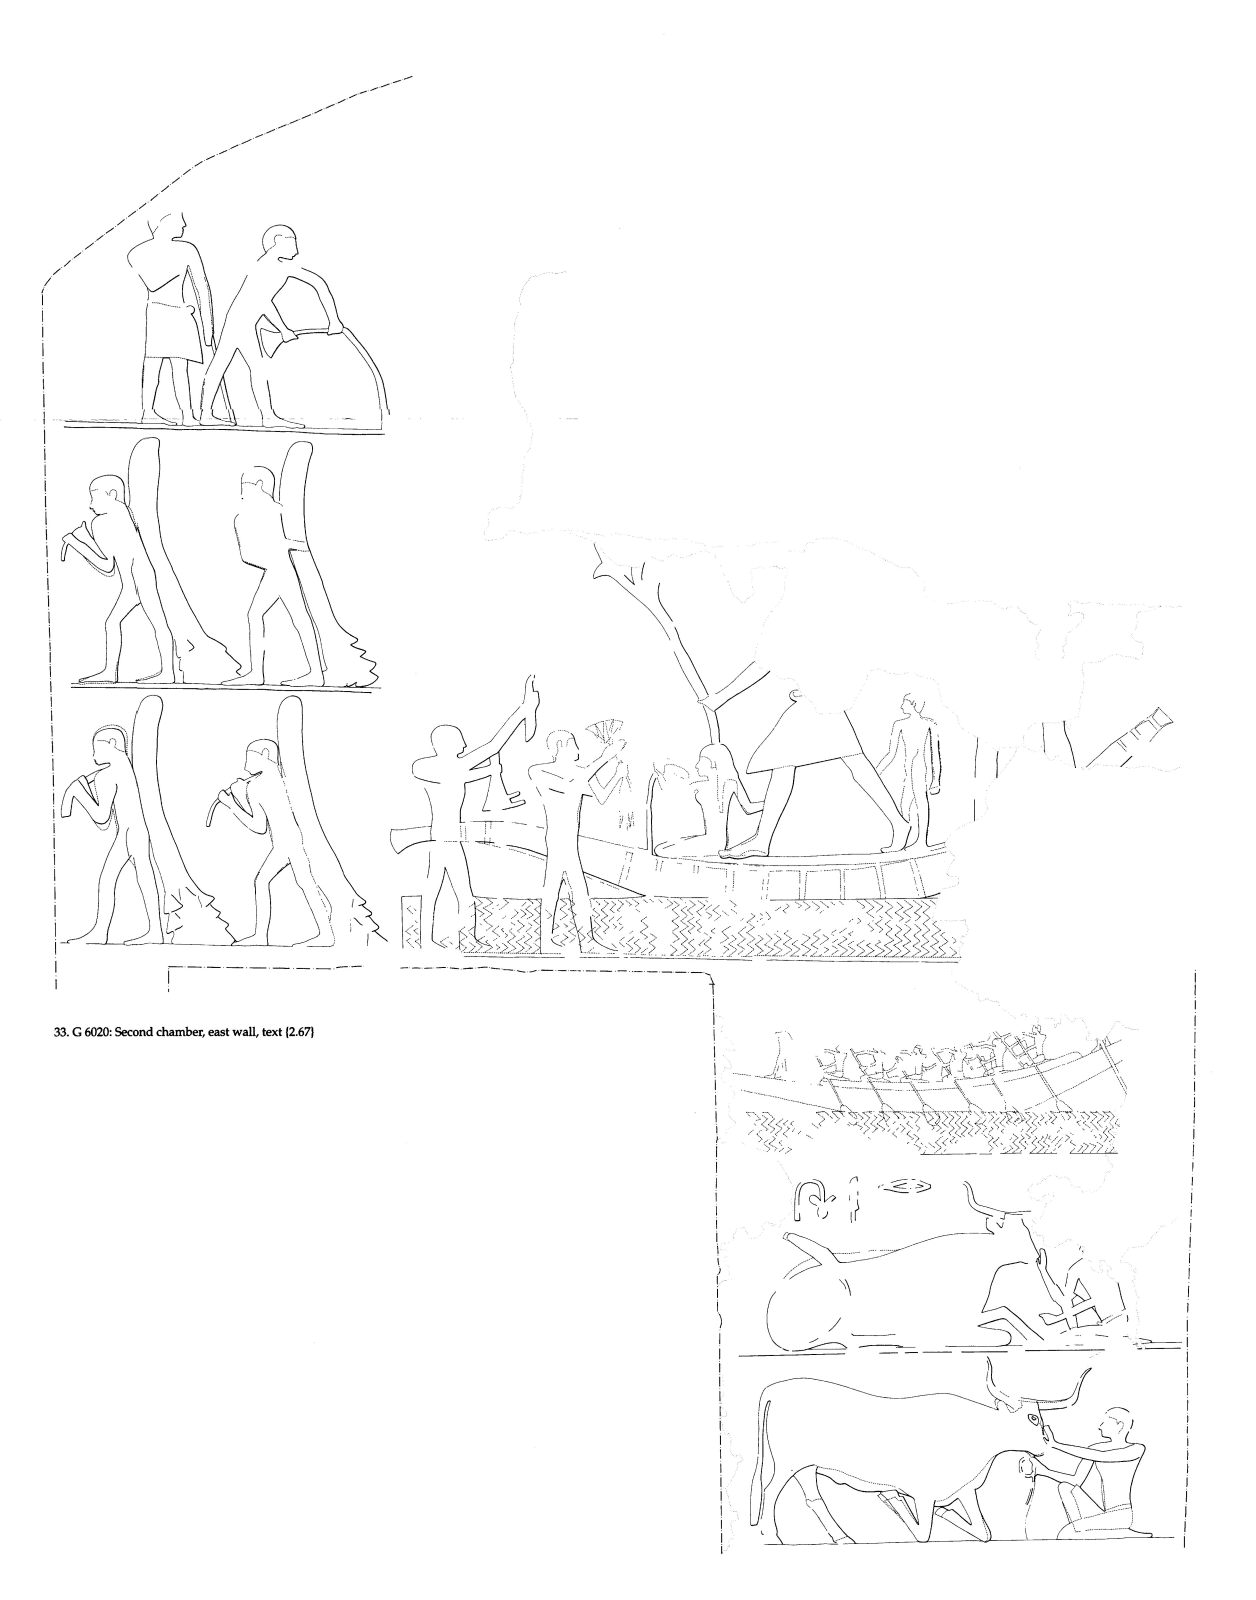 Drawings: G 6020: relief from second chamber, E wall